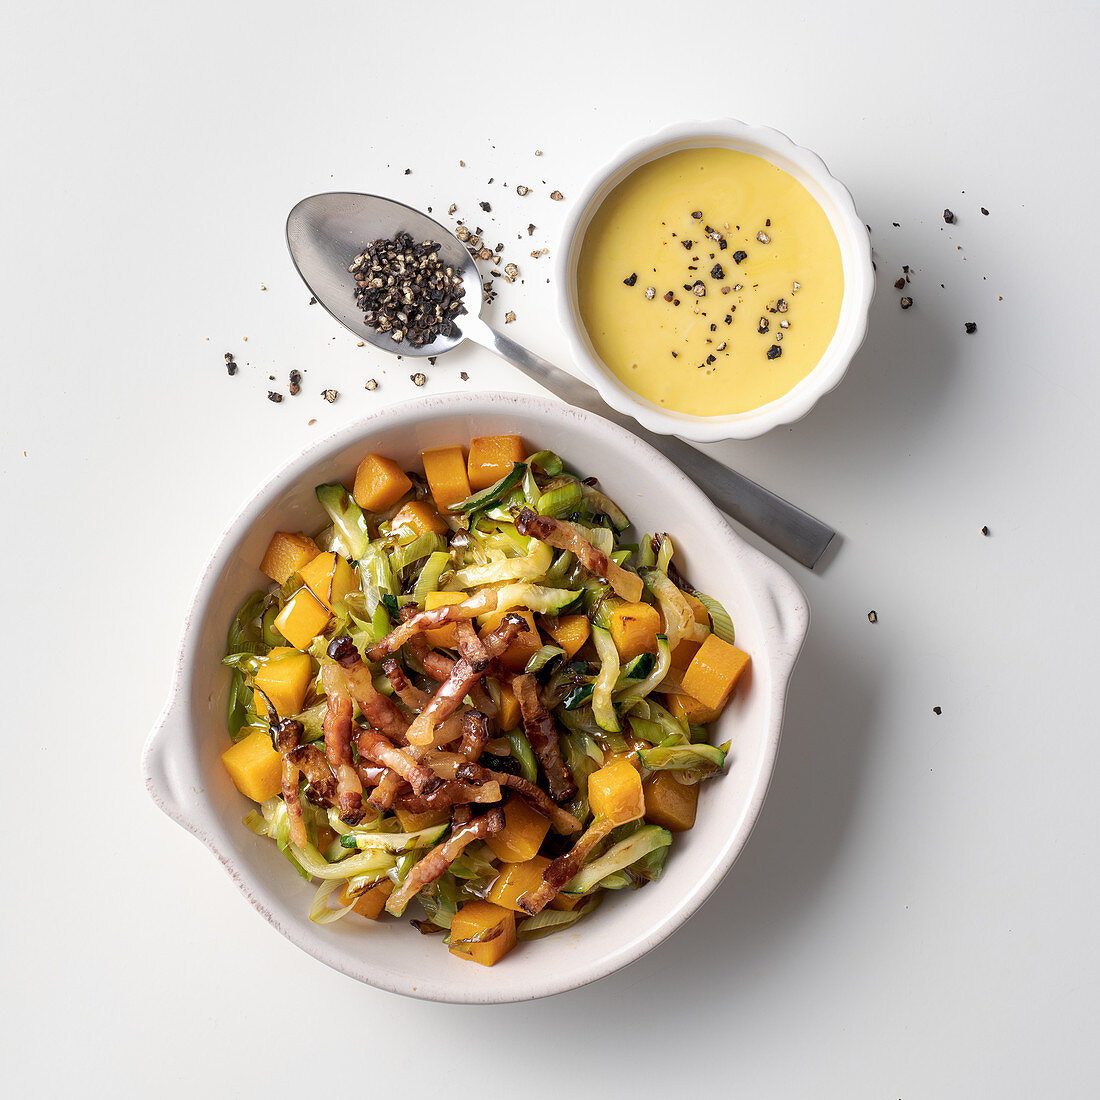 Summer vegetable carbonara with smoked scamorza cheese